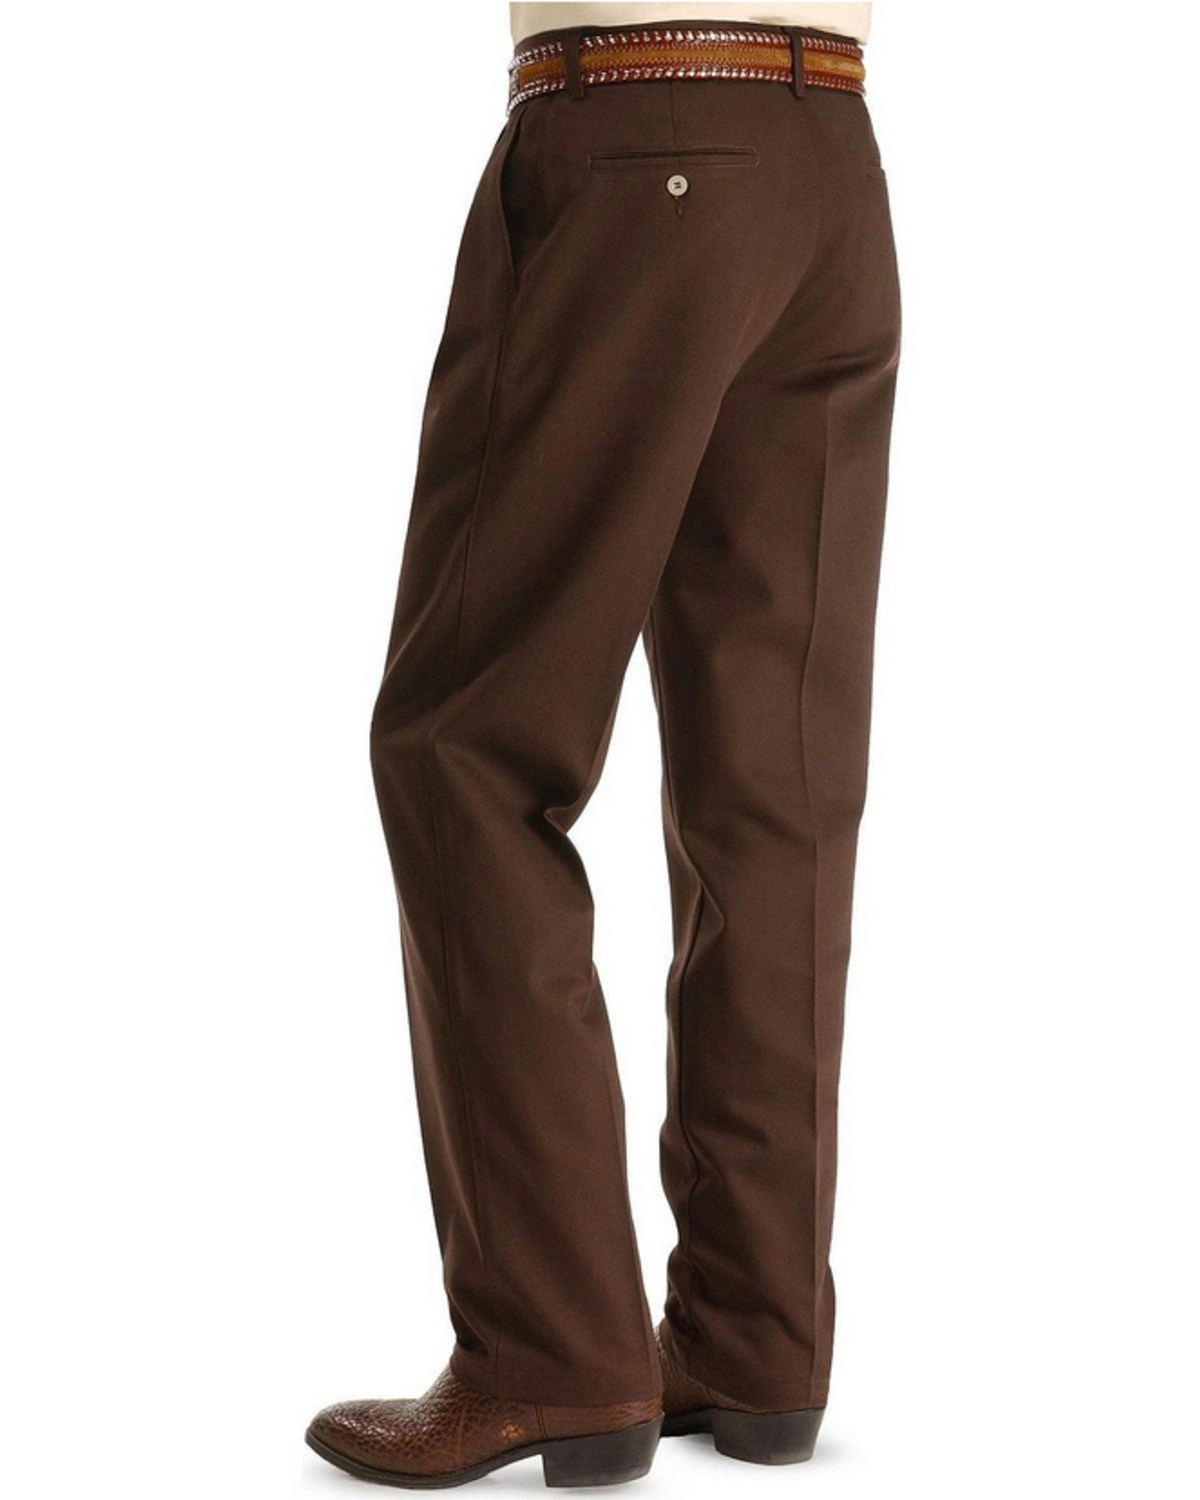 2a84acfd Zoomed Image Wrangler Slacks - Riata Relaxed Fit, Dark Brown, hi-res